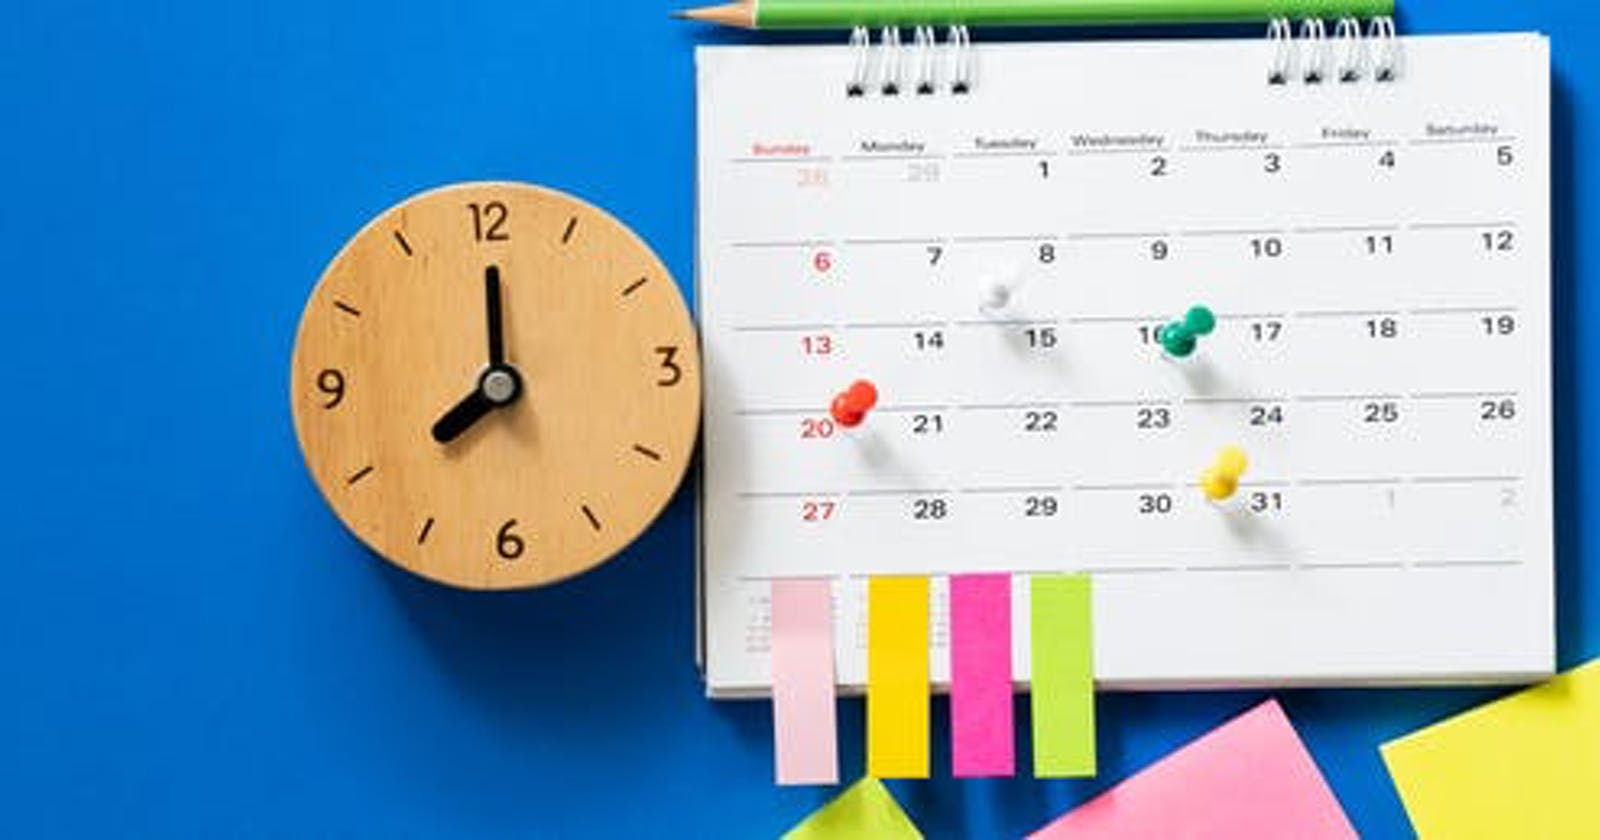 How to use laravel Schedule in non-Laravel applications